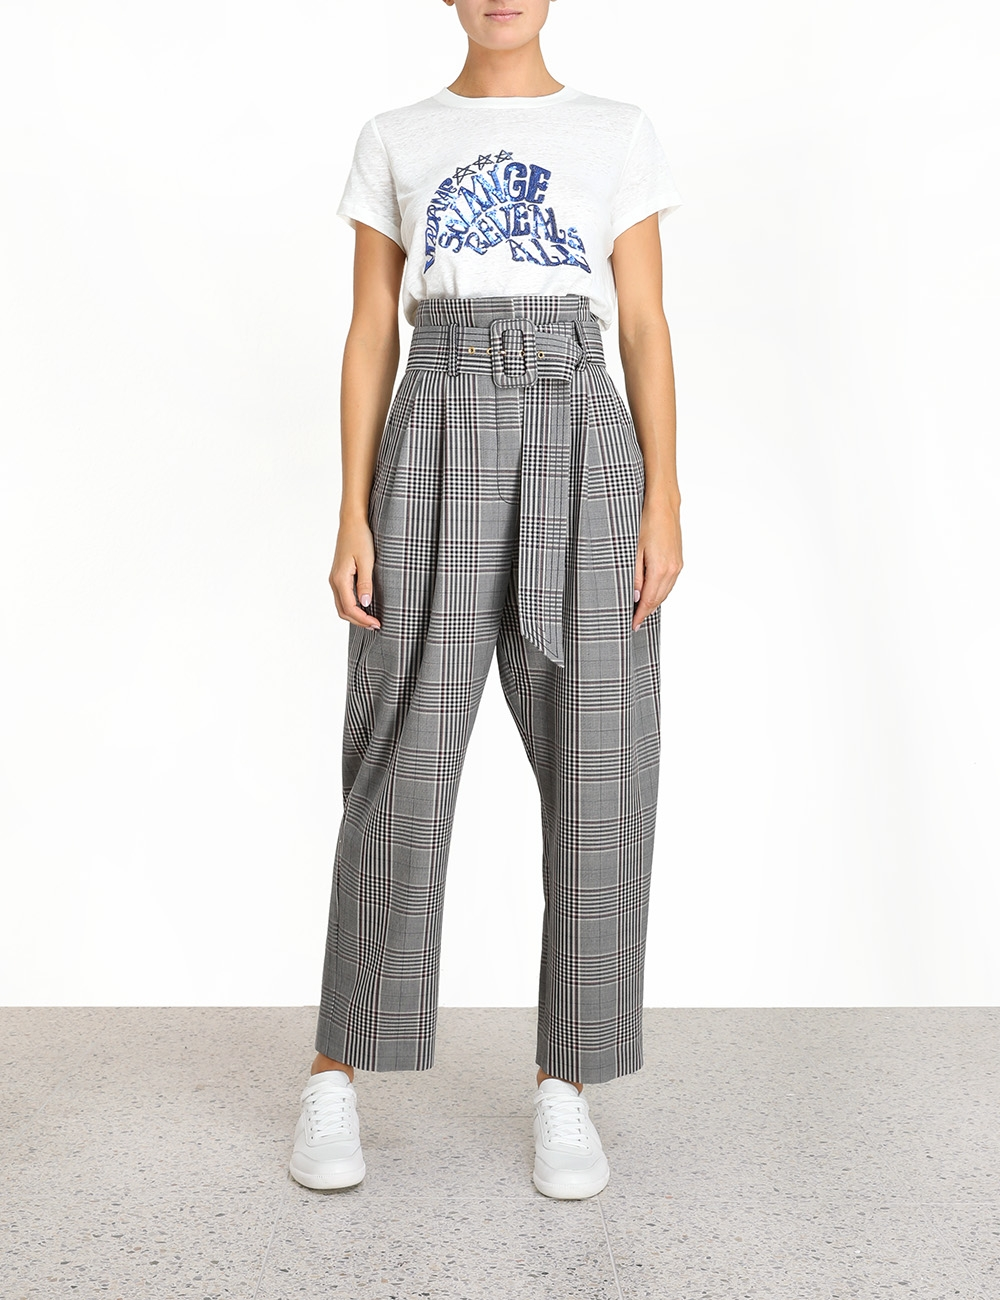 Charm Belted Pant